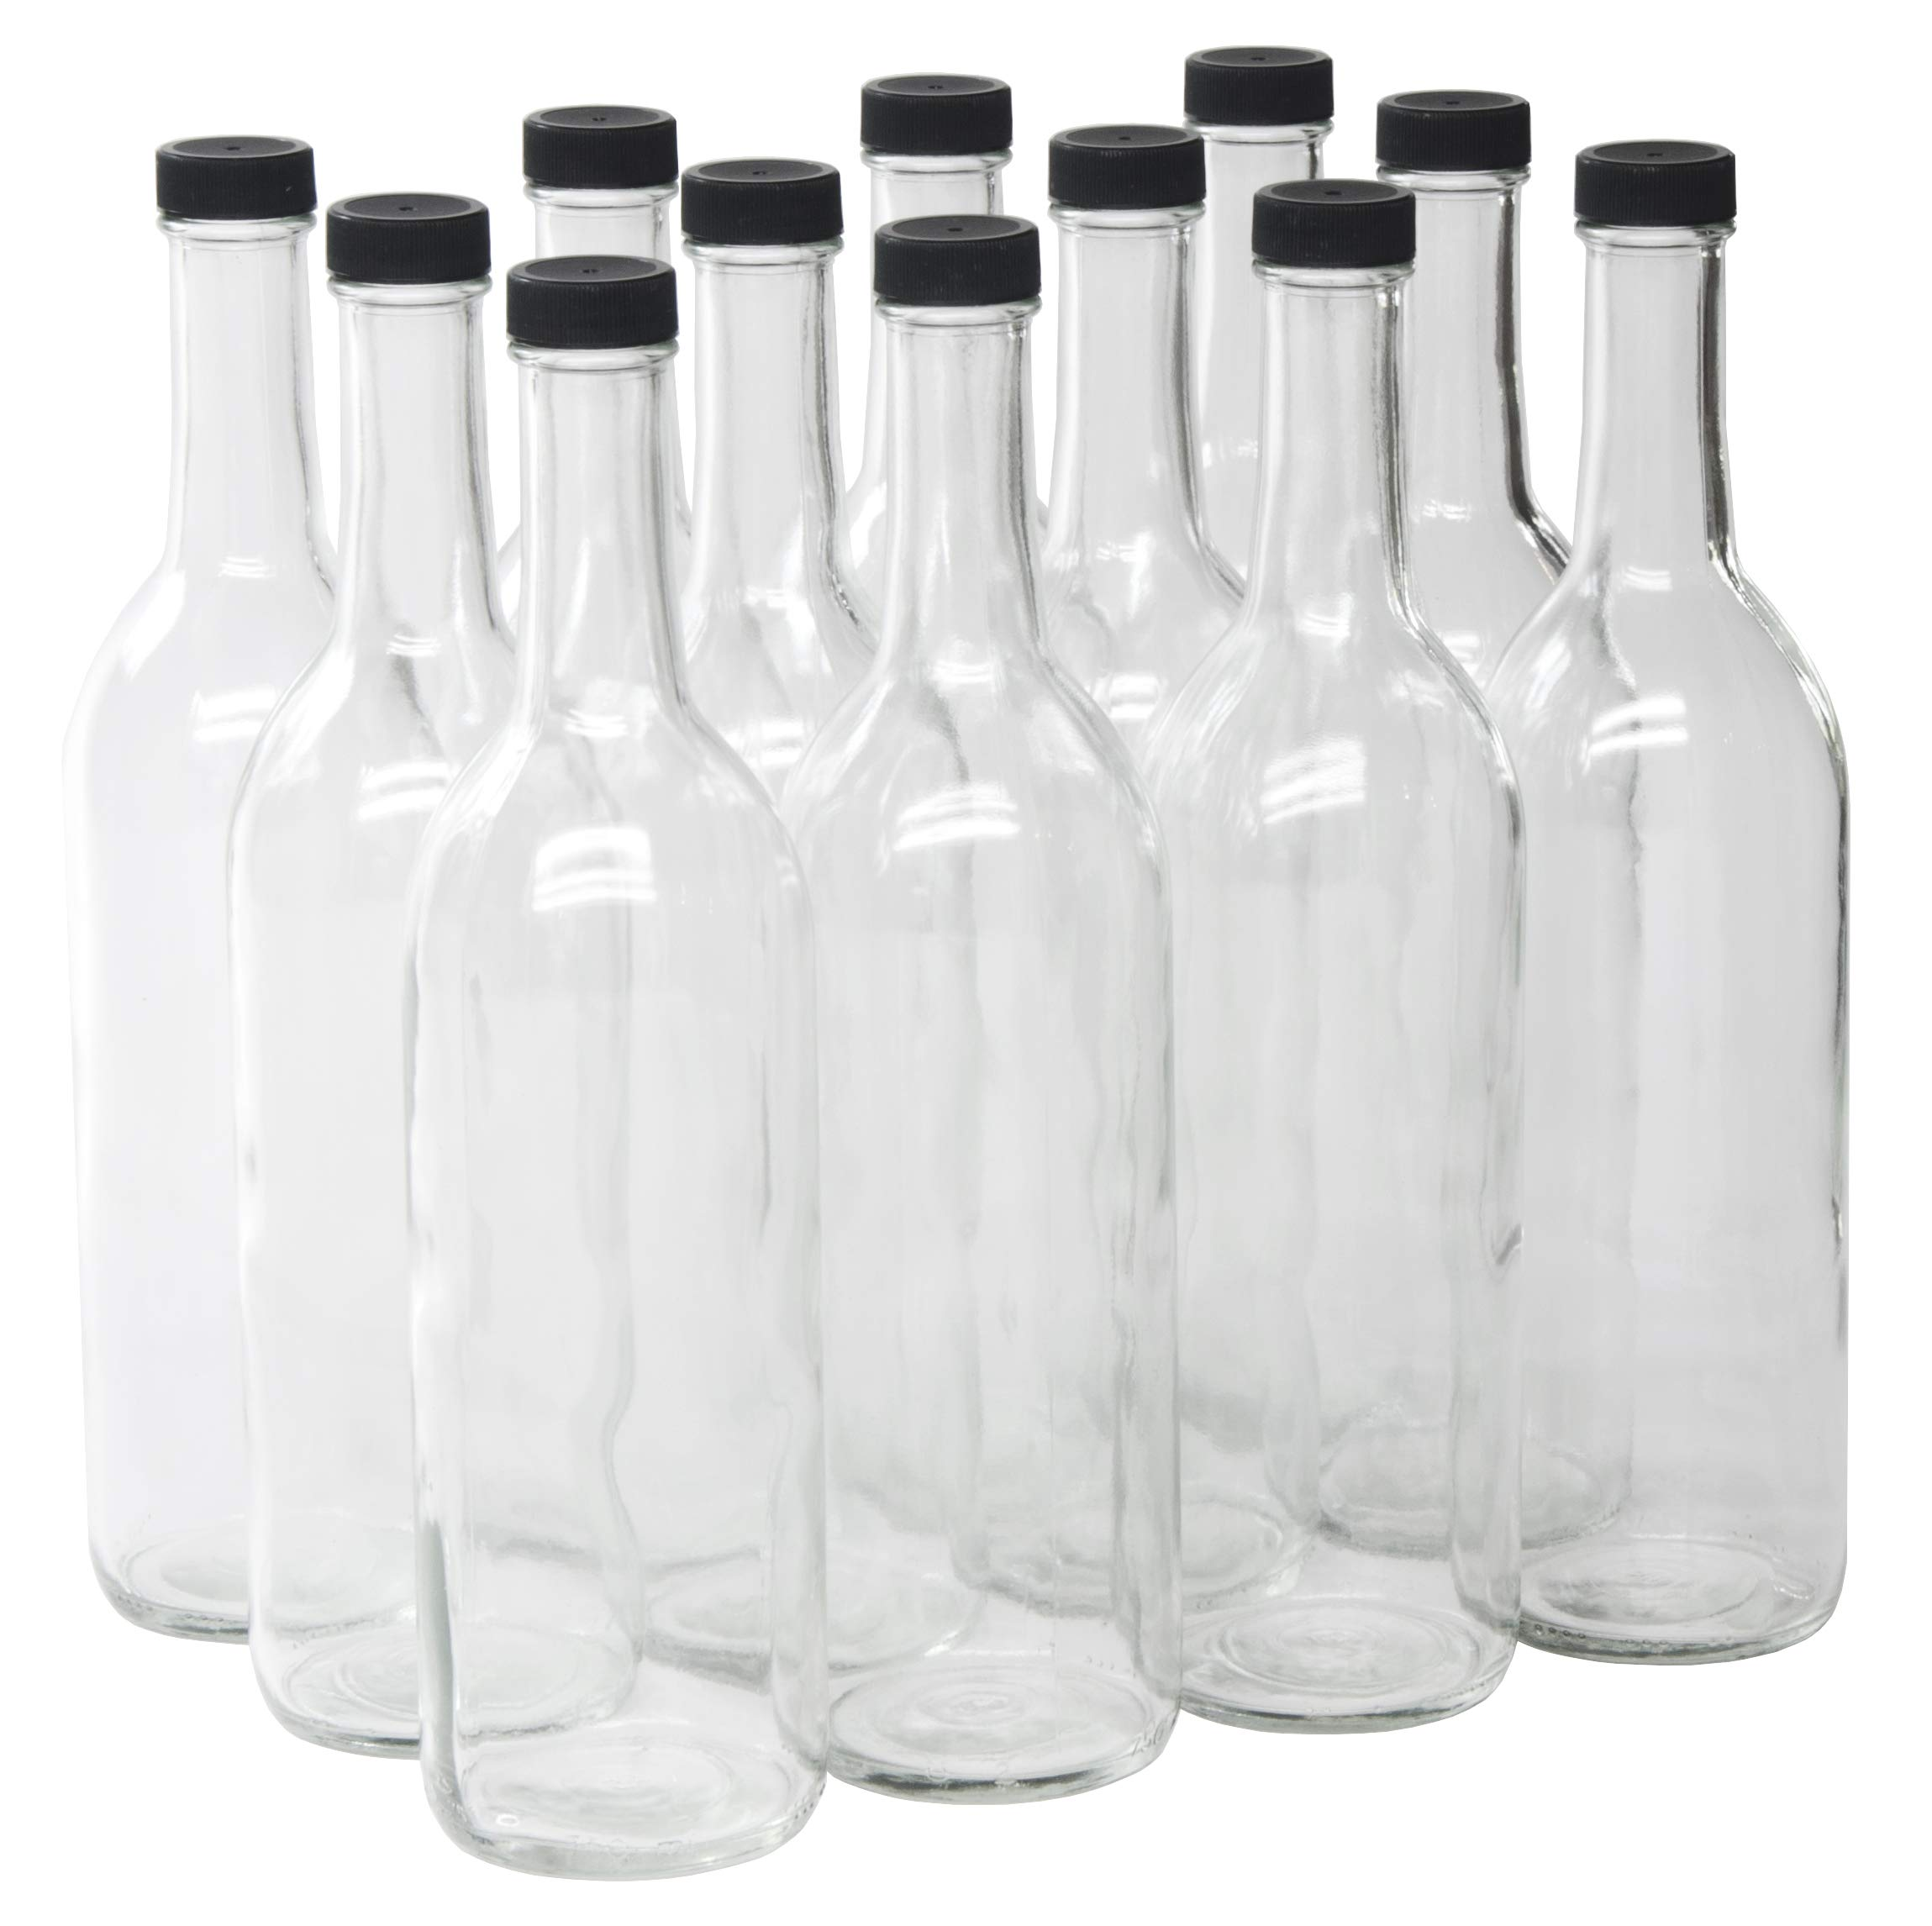 North Mountain Supply 750ml Clear Glass Bordeaux Wine Bottle Flat-Bottomed Screw-Top Finish - with 28mm Black Plastic Lids - Case of 12